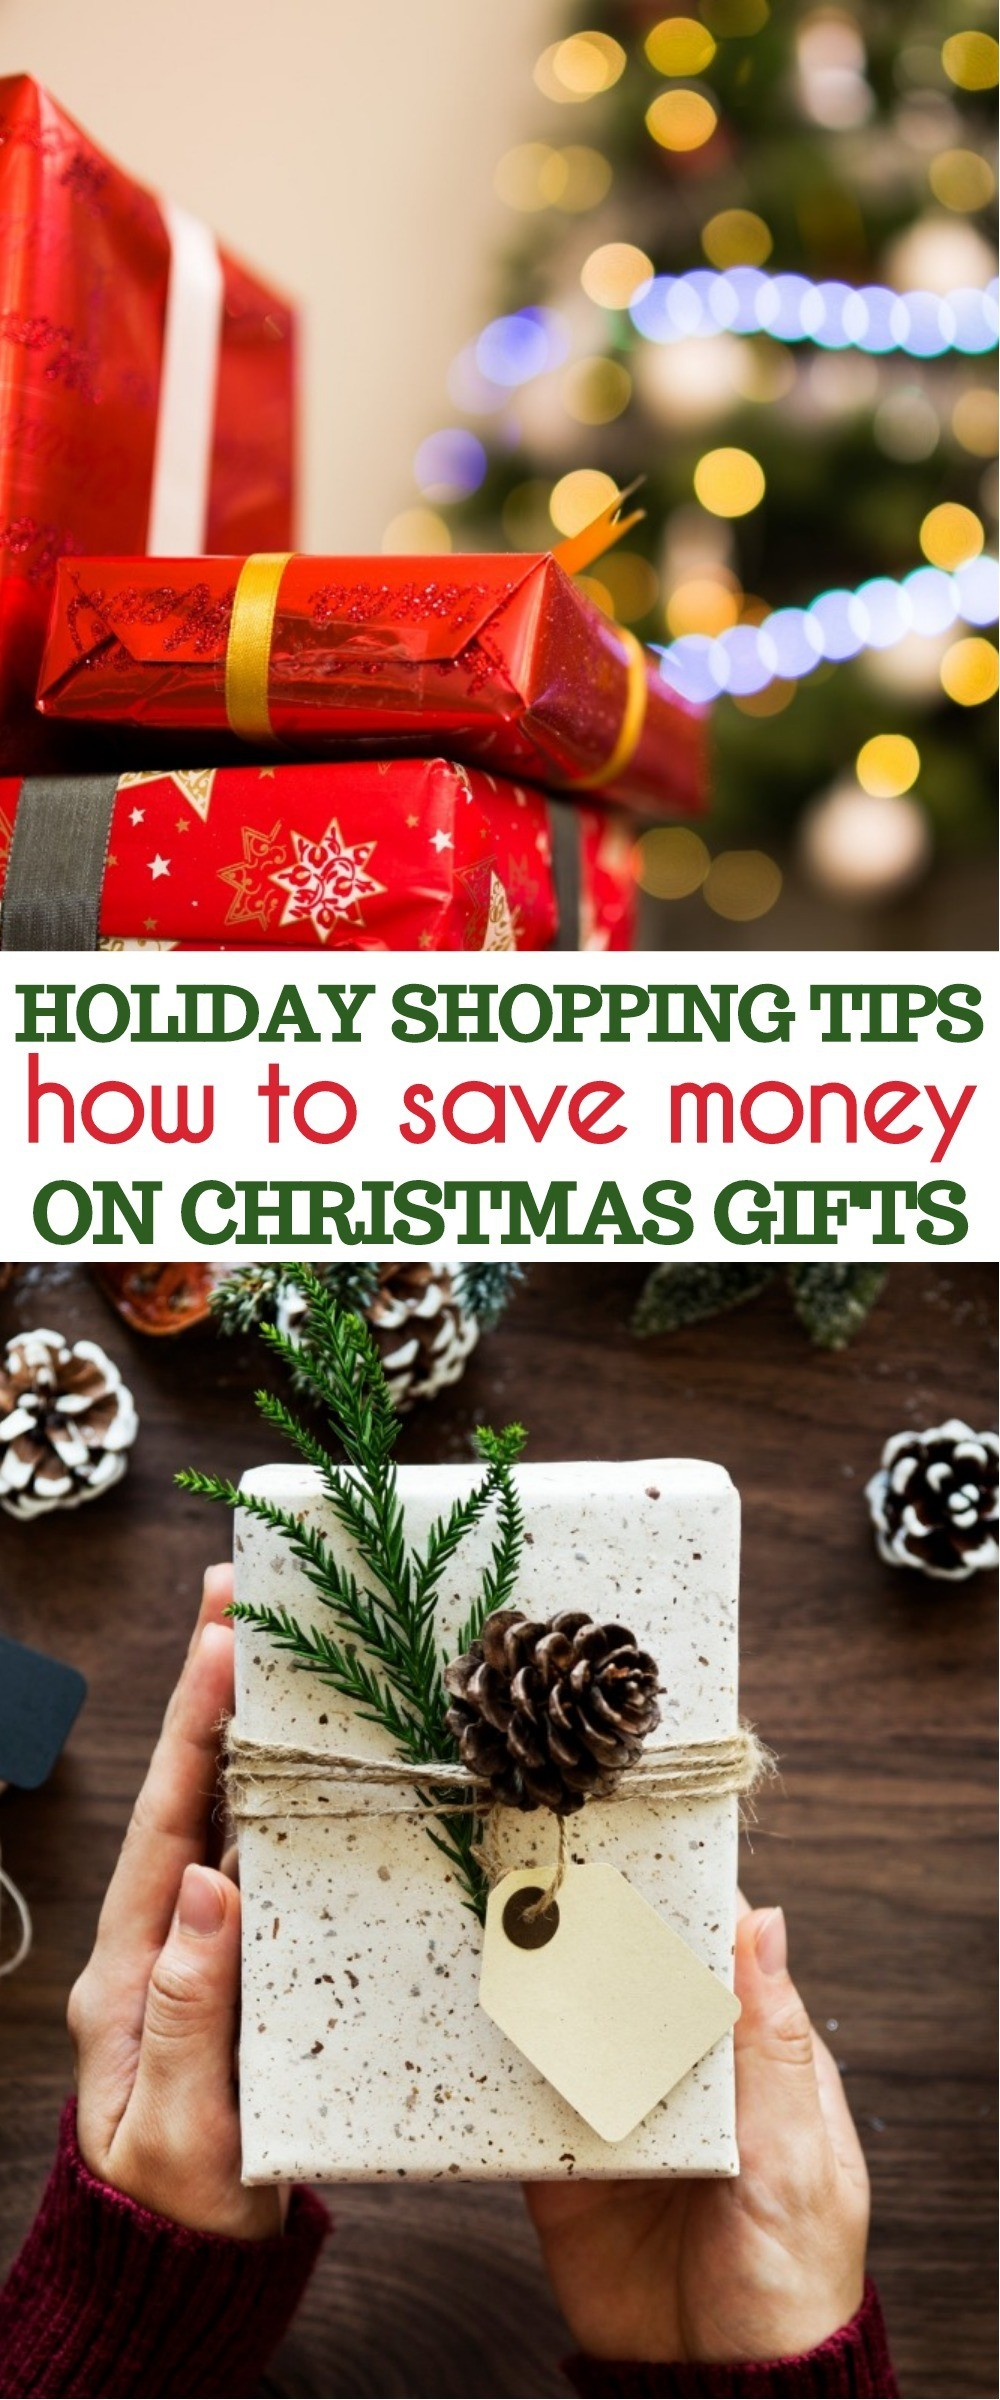 10 Holiday Shopping Tips - How To Save Money Buying Christmas Gifts